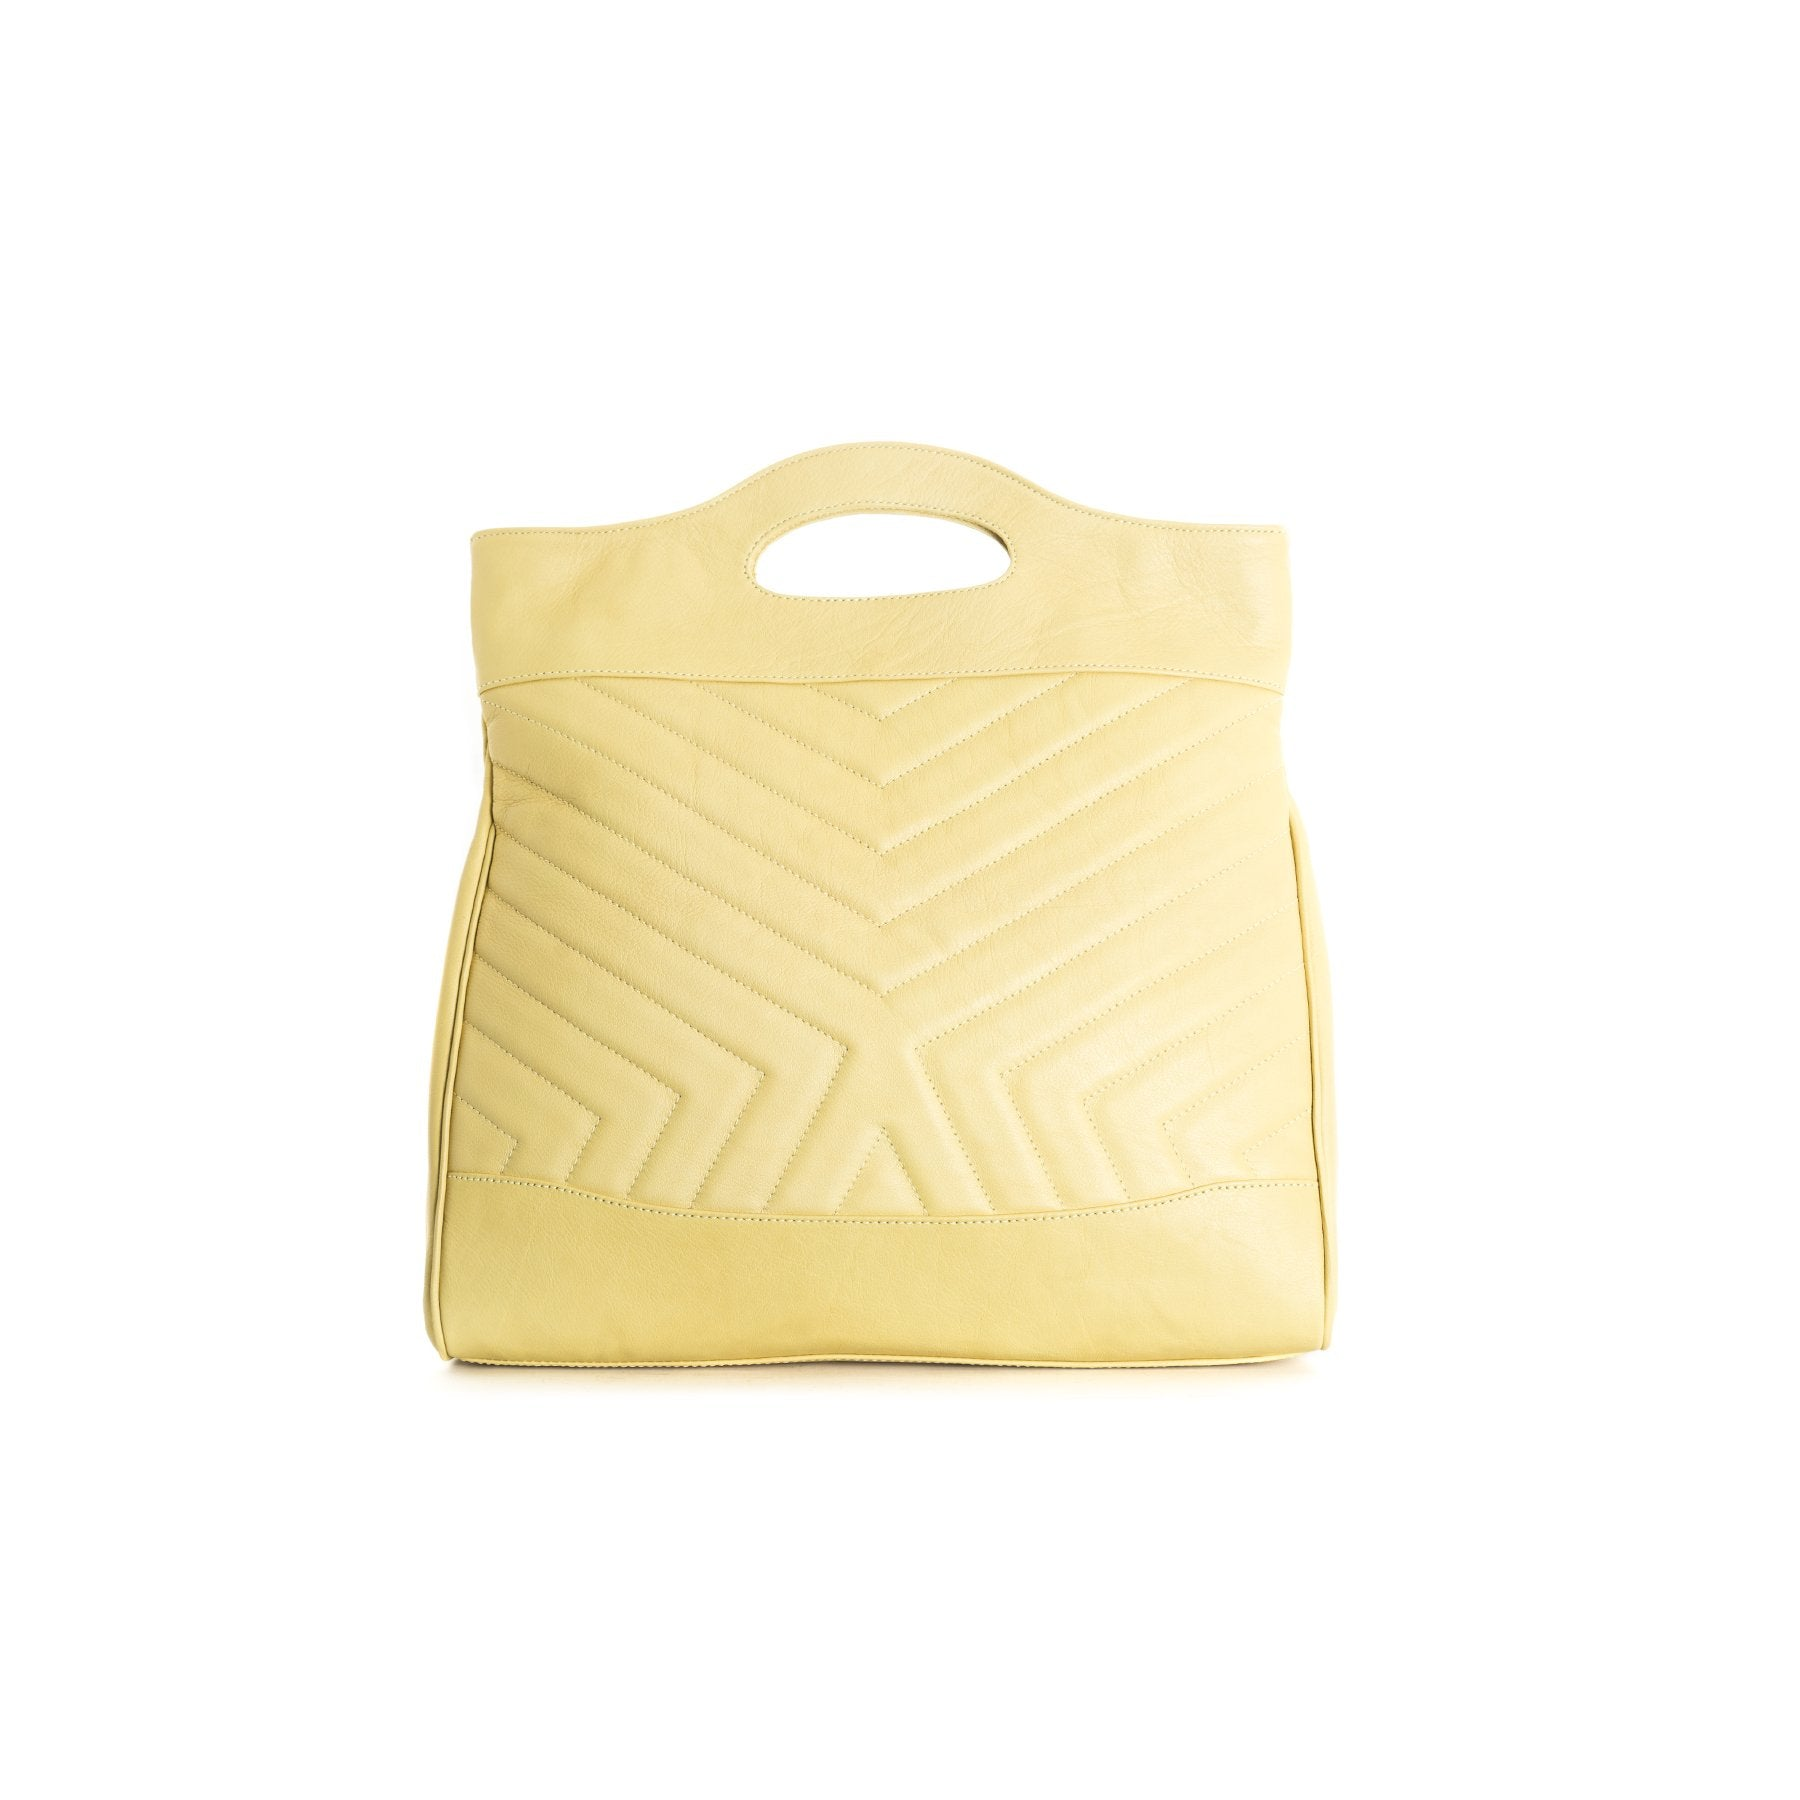 Alexi Yellow Leather Tote Bags